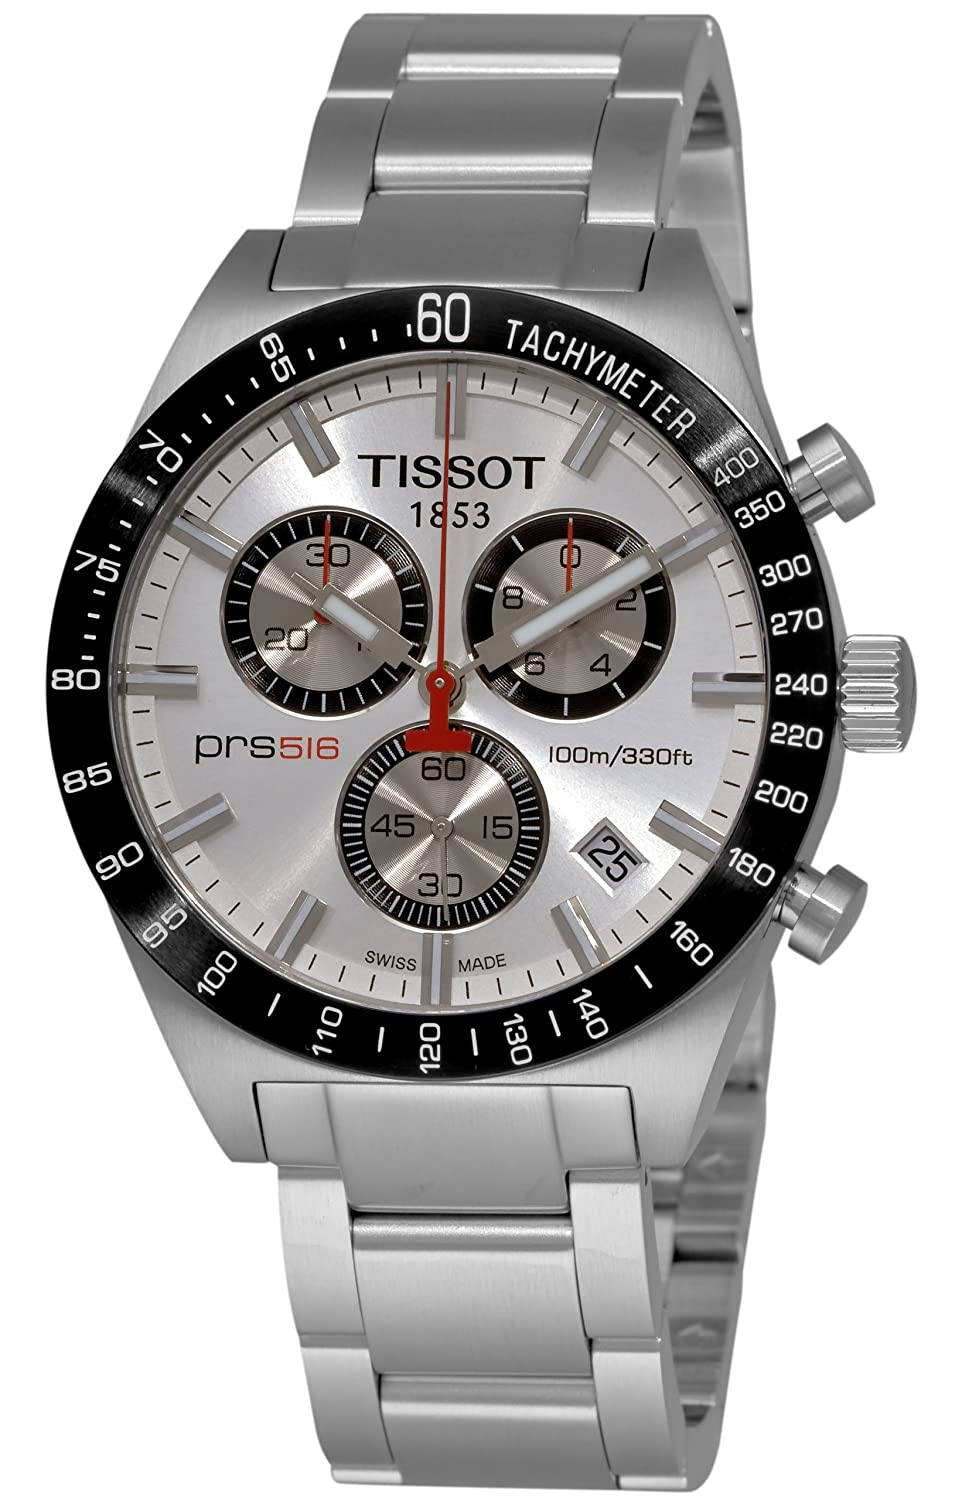 Tissot Mens Watch T36131672 Watches Amazoncom 2015 ...